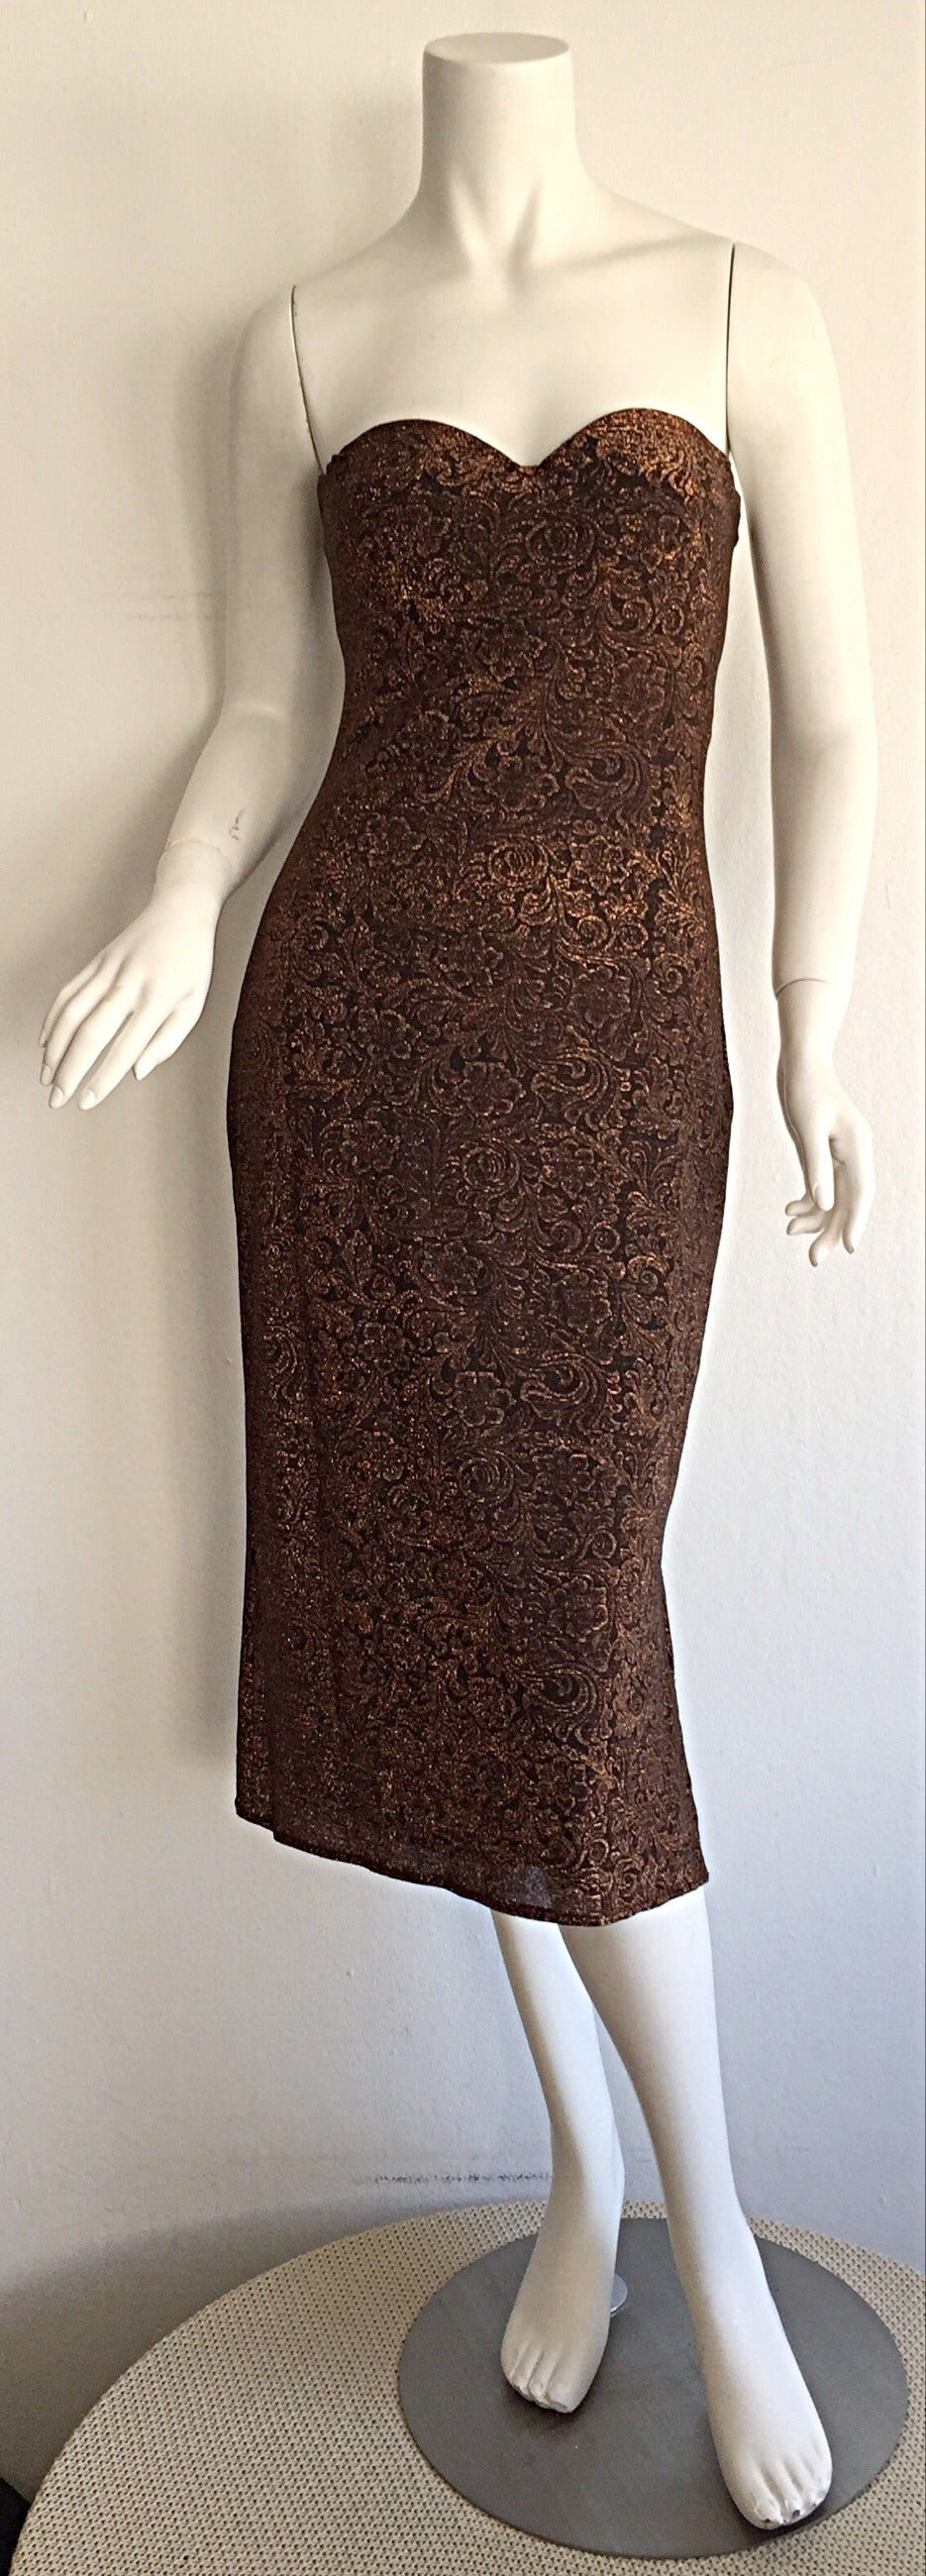 Beautiful Vintage Casadei Bronze Intricate Metallic Dress w/ Convertible Straps For Sale 3